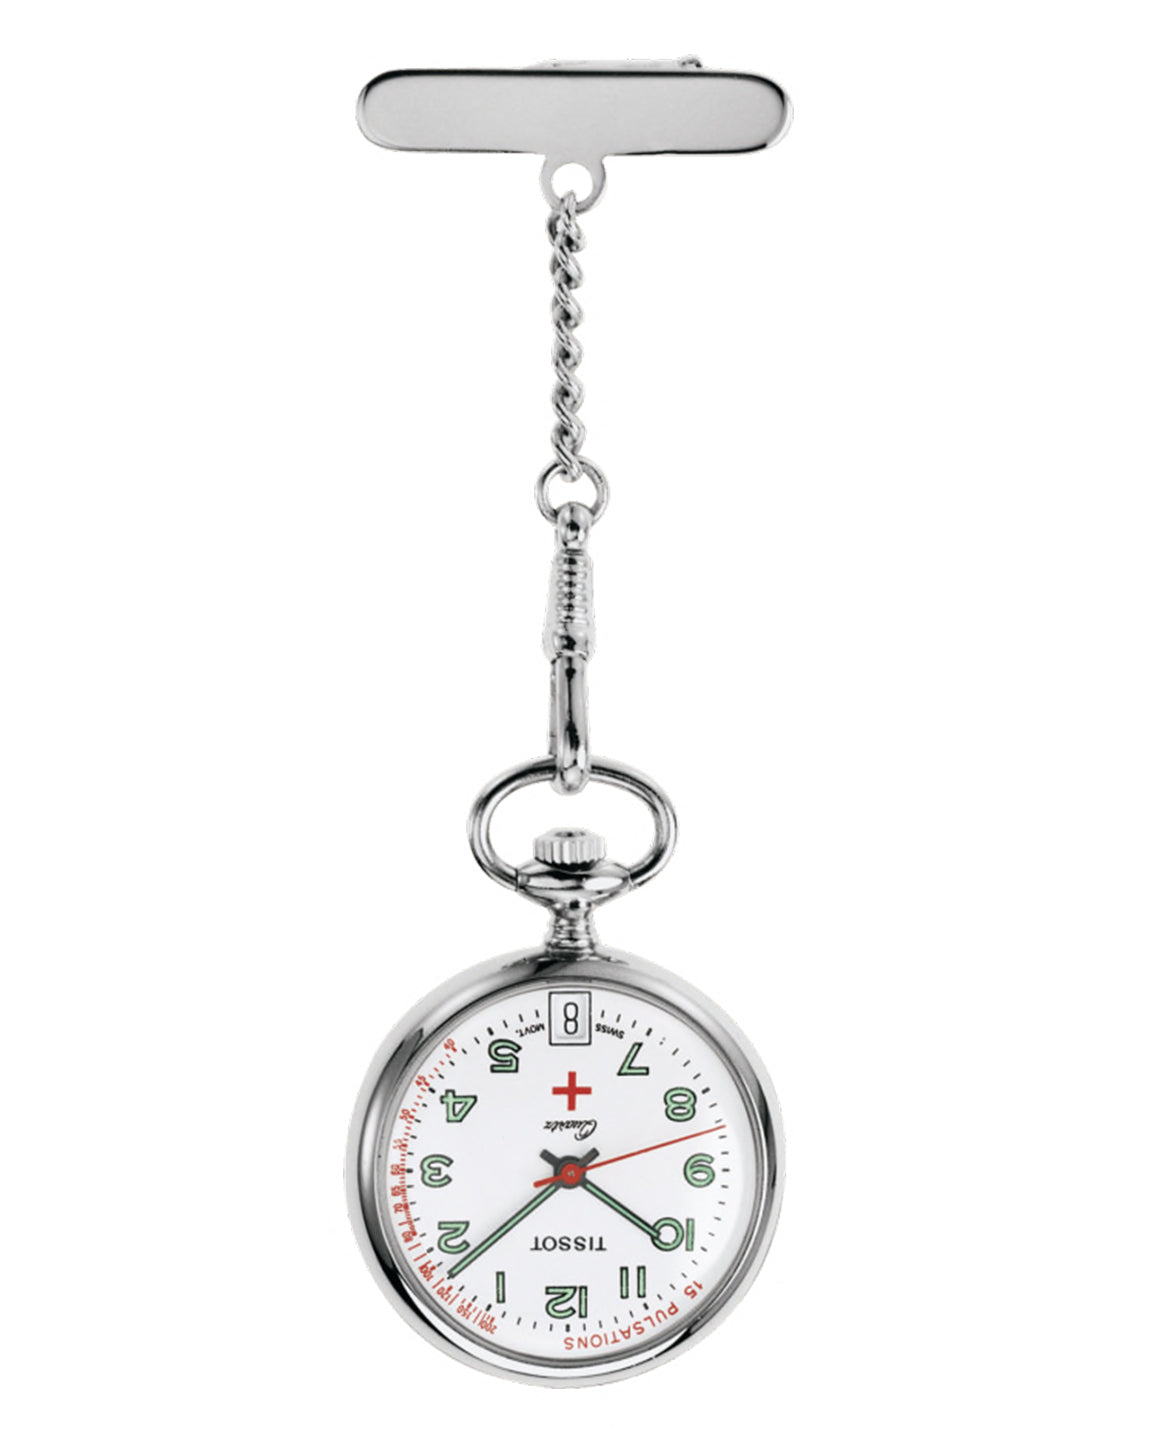 Tissot Pendant Nurse's Fob Watch